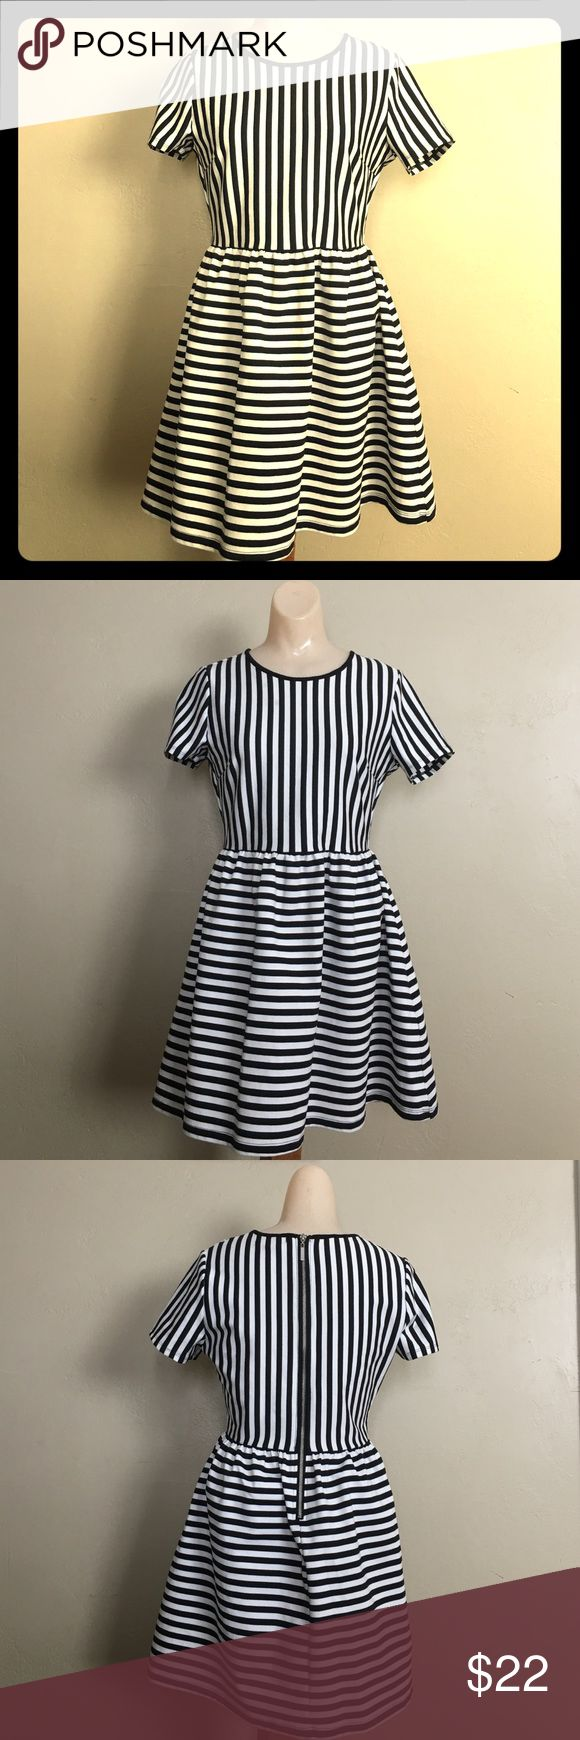 Forever21 black&white stripes mini dress size L Used but in a like new condition. No stains, or holes. We promise to ship as soon as we can. We offer bundle shipping. We store our products in a smoke free home. Forever 21 Dresses Mini